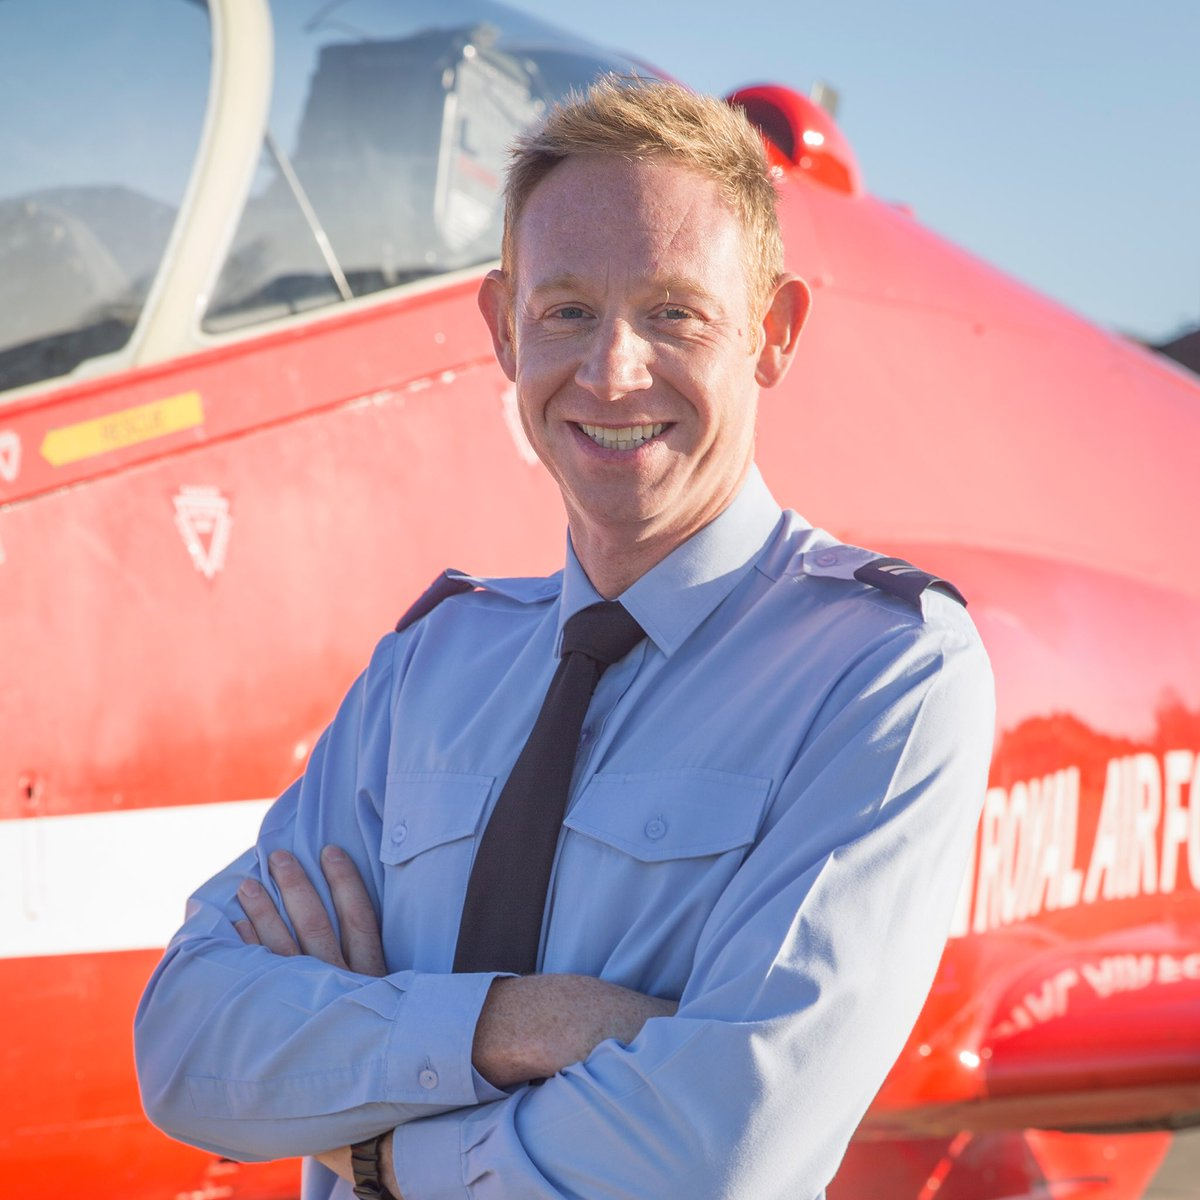 Red Arrows's photo on Corporal Jonathan Bayliss